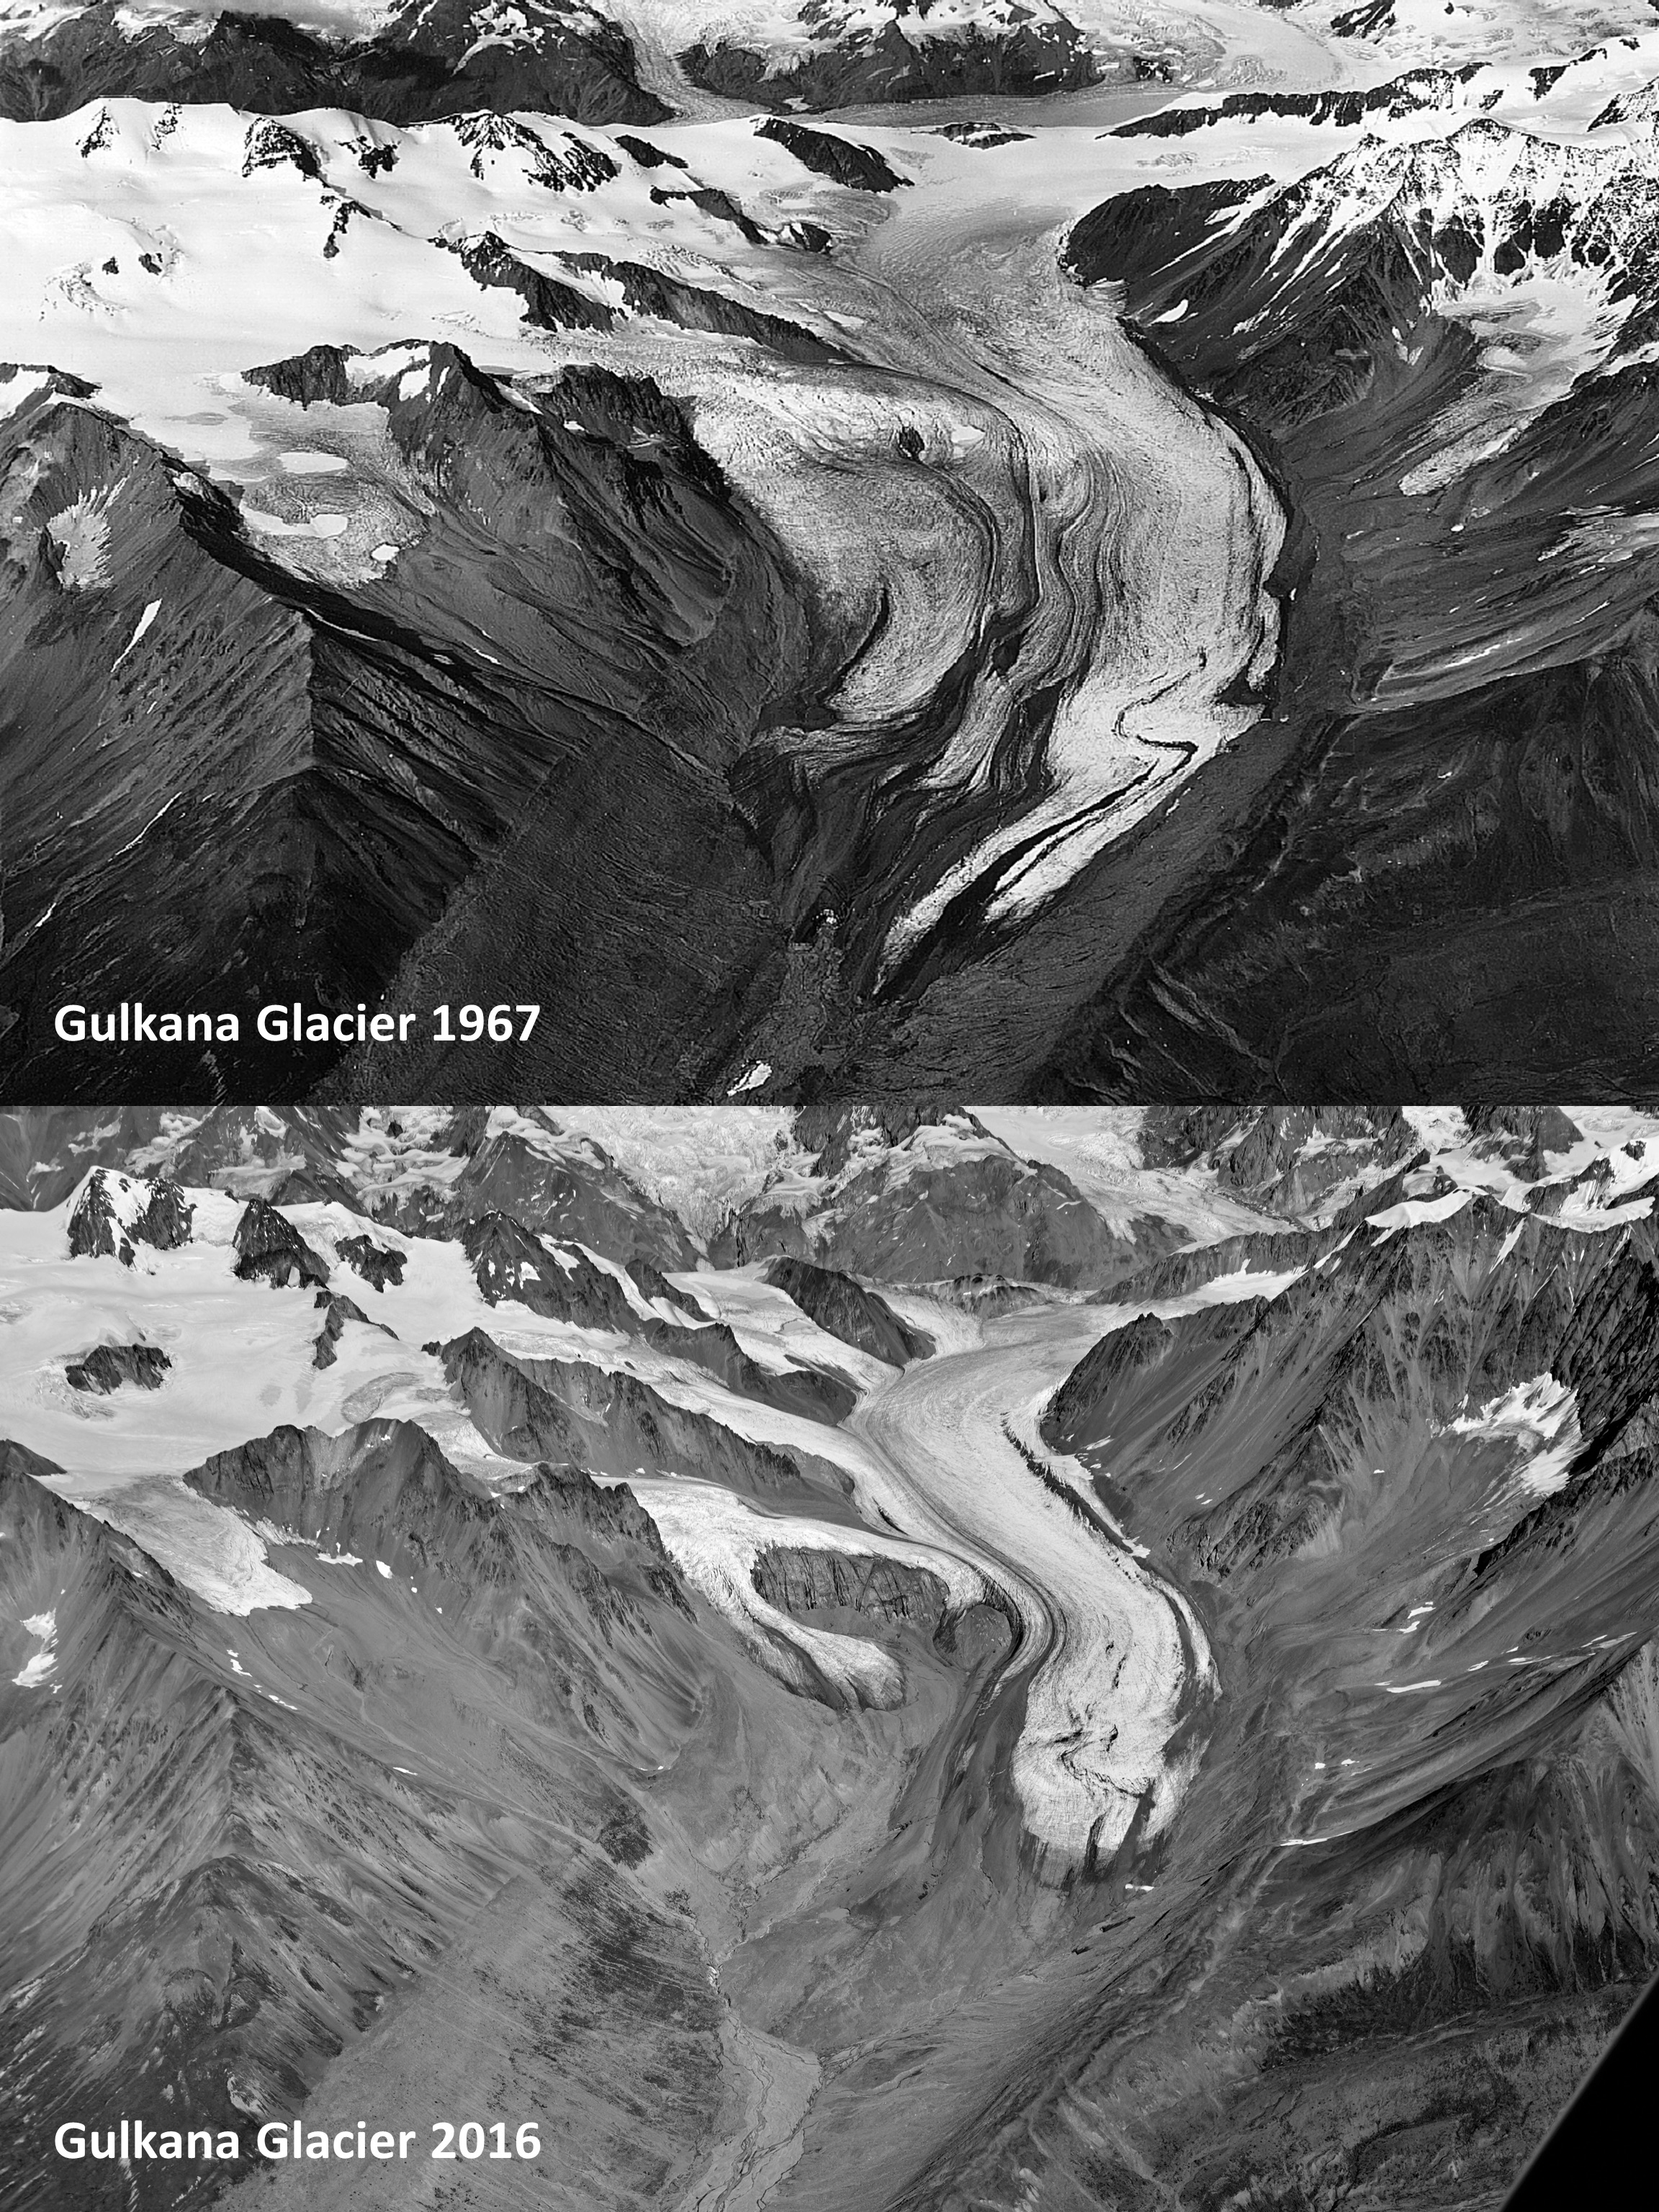 The top photo shows the Gulkana Glacier in 1967 when the US Geological Survey started a glacier mass balance monitoring program. The bottom photo is 49 years later in 2016 and shows the shrinkage of the glacier extent. The total loss of water from the glacier retreat equals a 25m deep water column spread out across the entire recent glacier area. Gulkana Glacier is in the Alaska Range south of Delta Junction. (US Geological Survey)